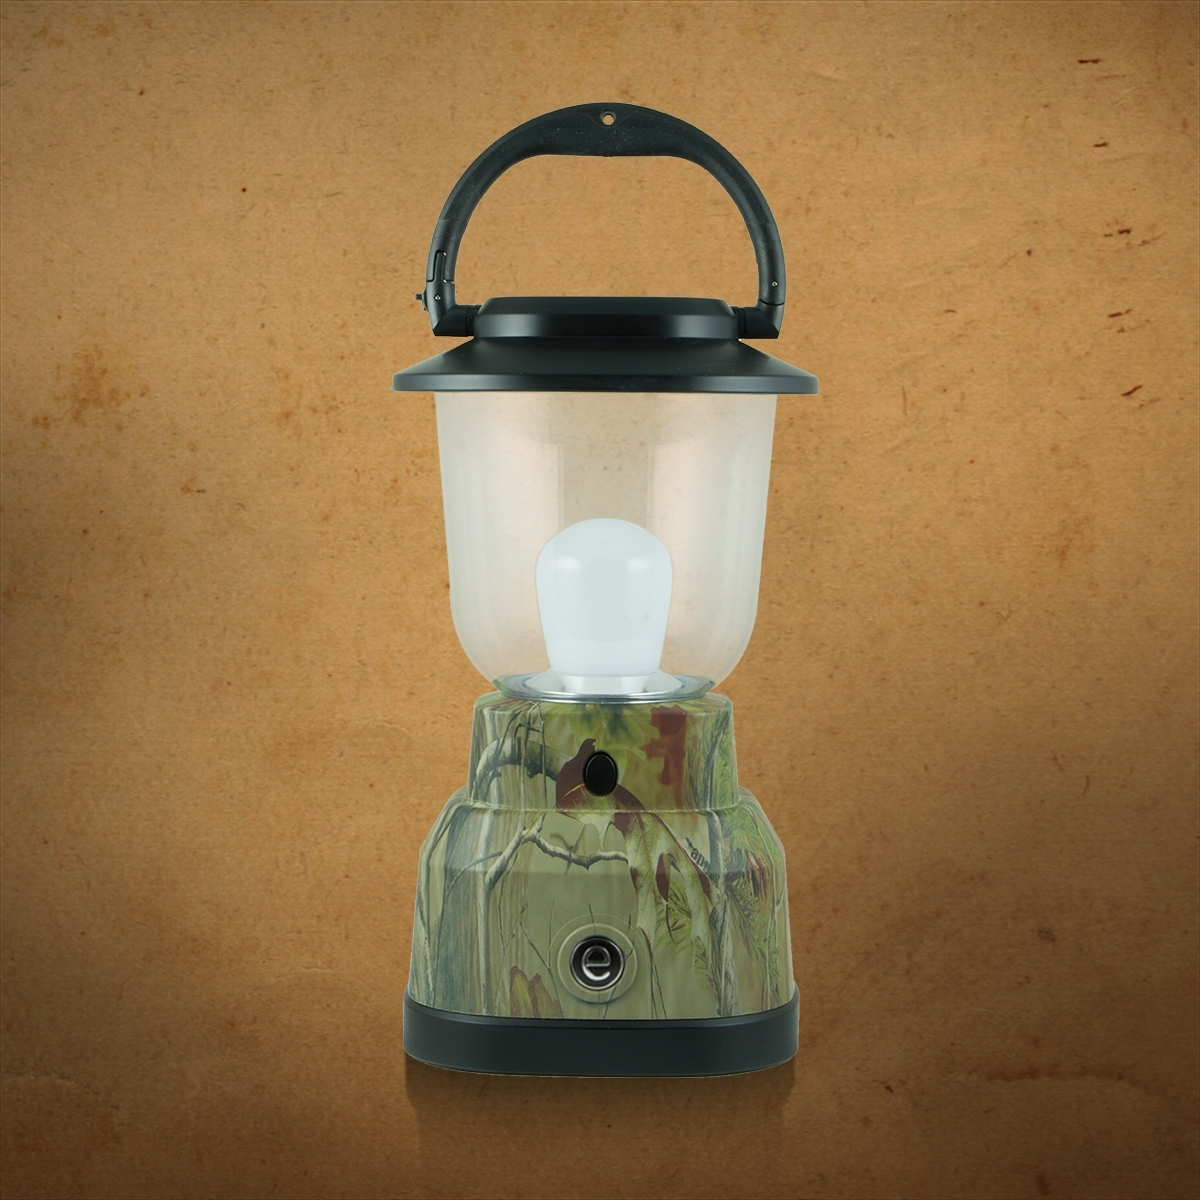 Ecosurvivor | Camping Lanterns | Outdoor Lanterns | Jasco regarding Outdoor Orange Lanterns (Image 10 of 20)